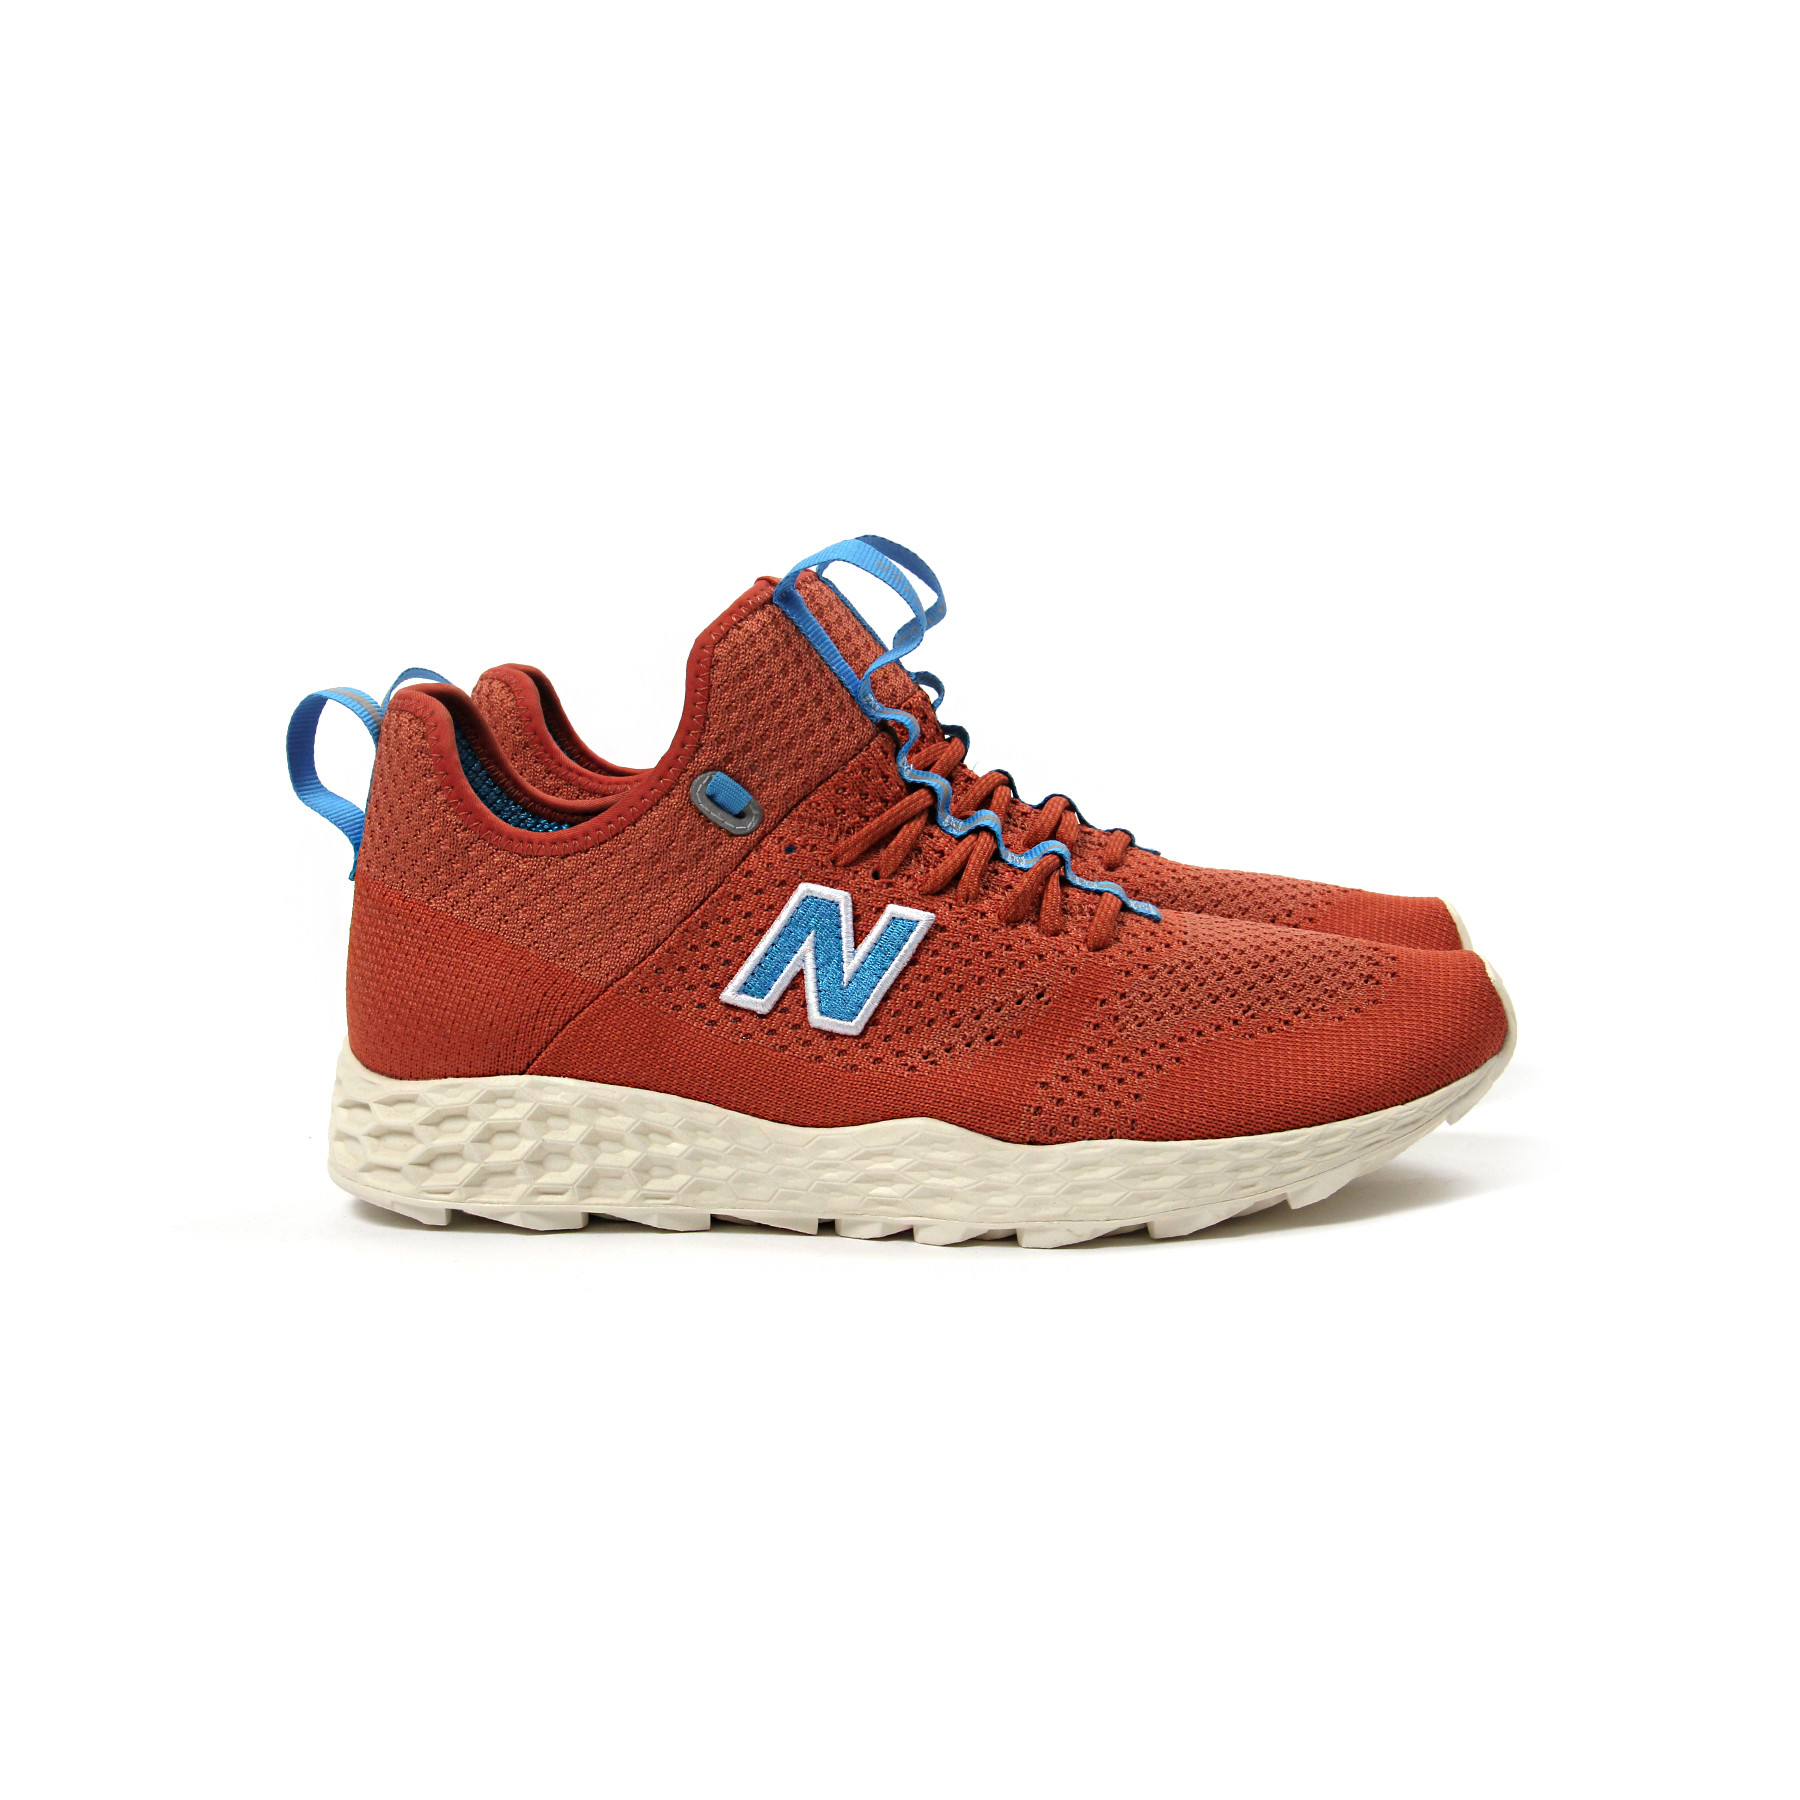 new style 0208e f4a89 Very Goods   Concepts International   Concepts X New Balance Trailbuster  MFLTBDC (Warm Copper Jupiter Helium